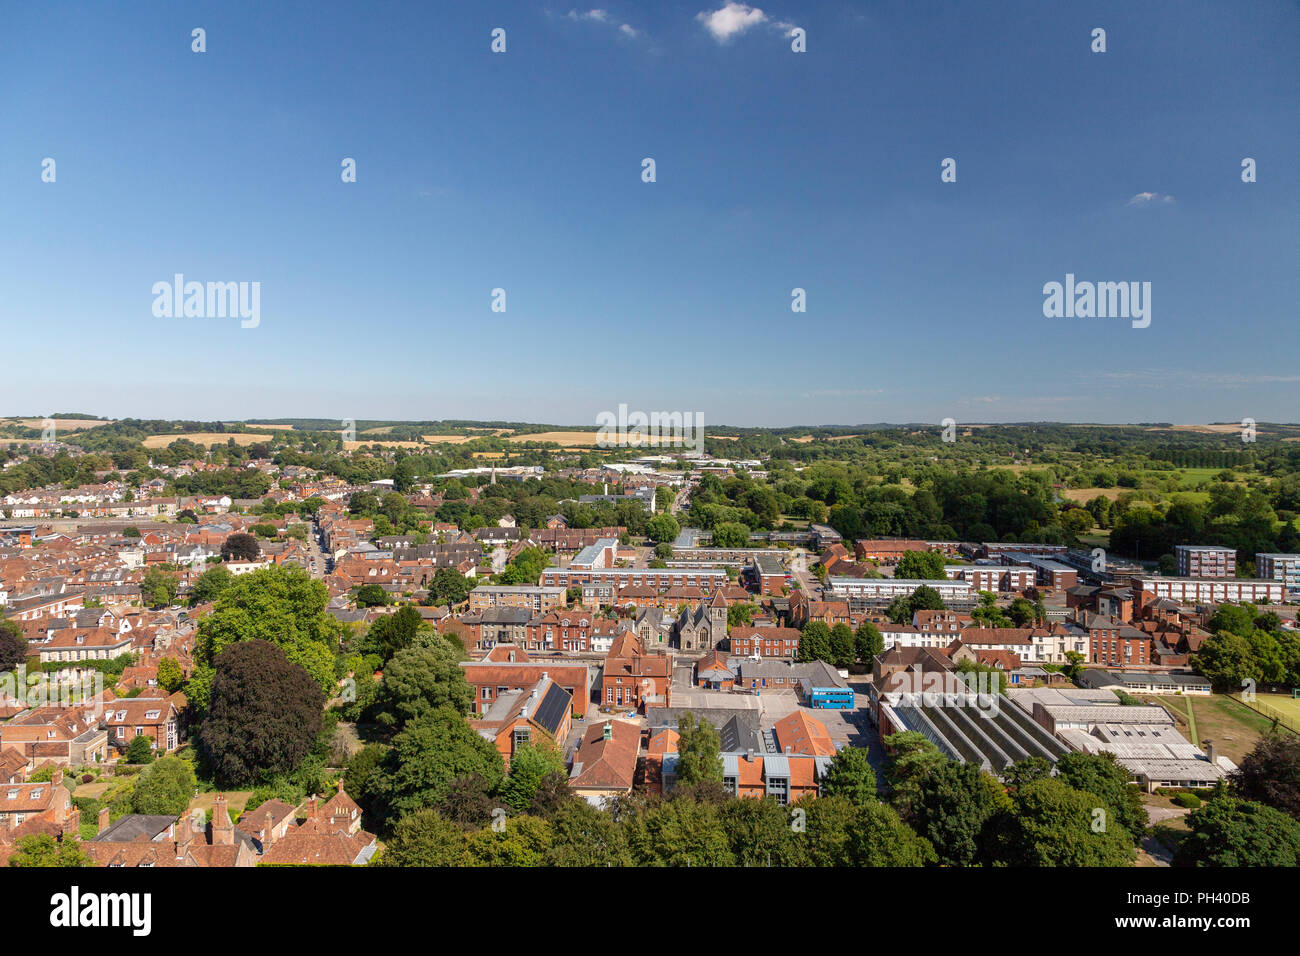 The medieval cathedral city of Salisbury in Wiltshire, UK, seen from above during a beautifully clear day in summer. Stock Photo